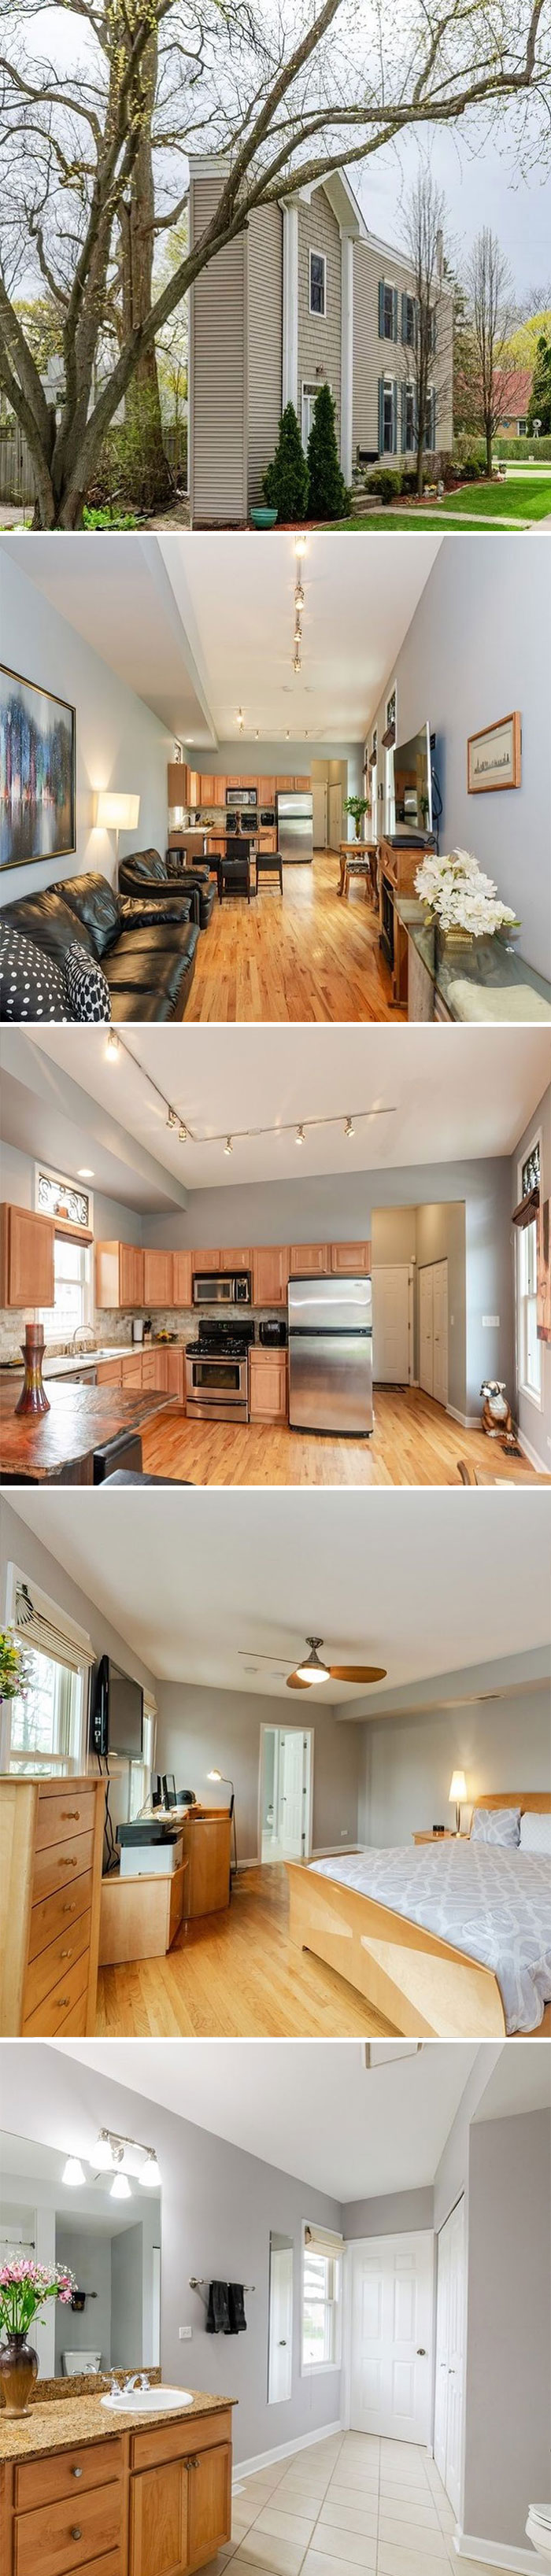 """To Continue Today's Interesting Theme Here's The """"Pie House"""". Was Listed At $269,900. 2 Bd, 2.5 Bath. 1,122 Sf"""